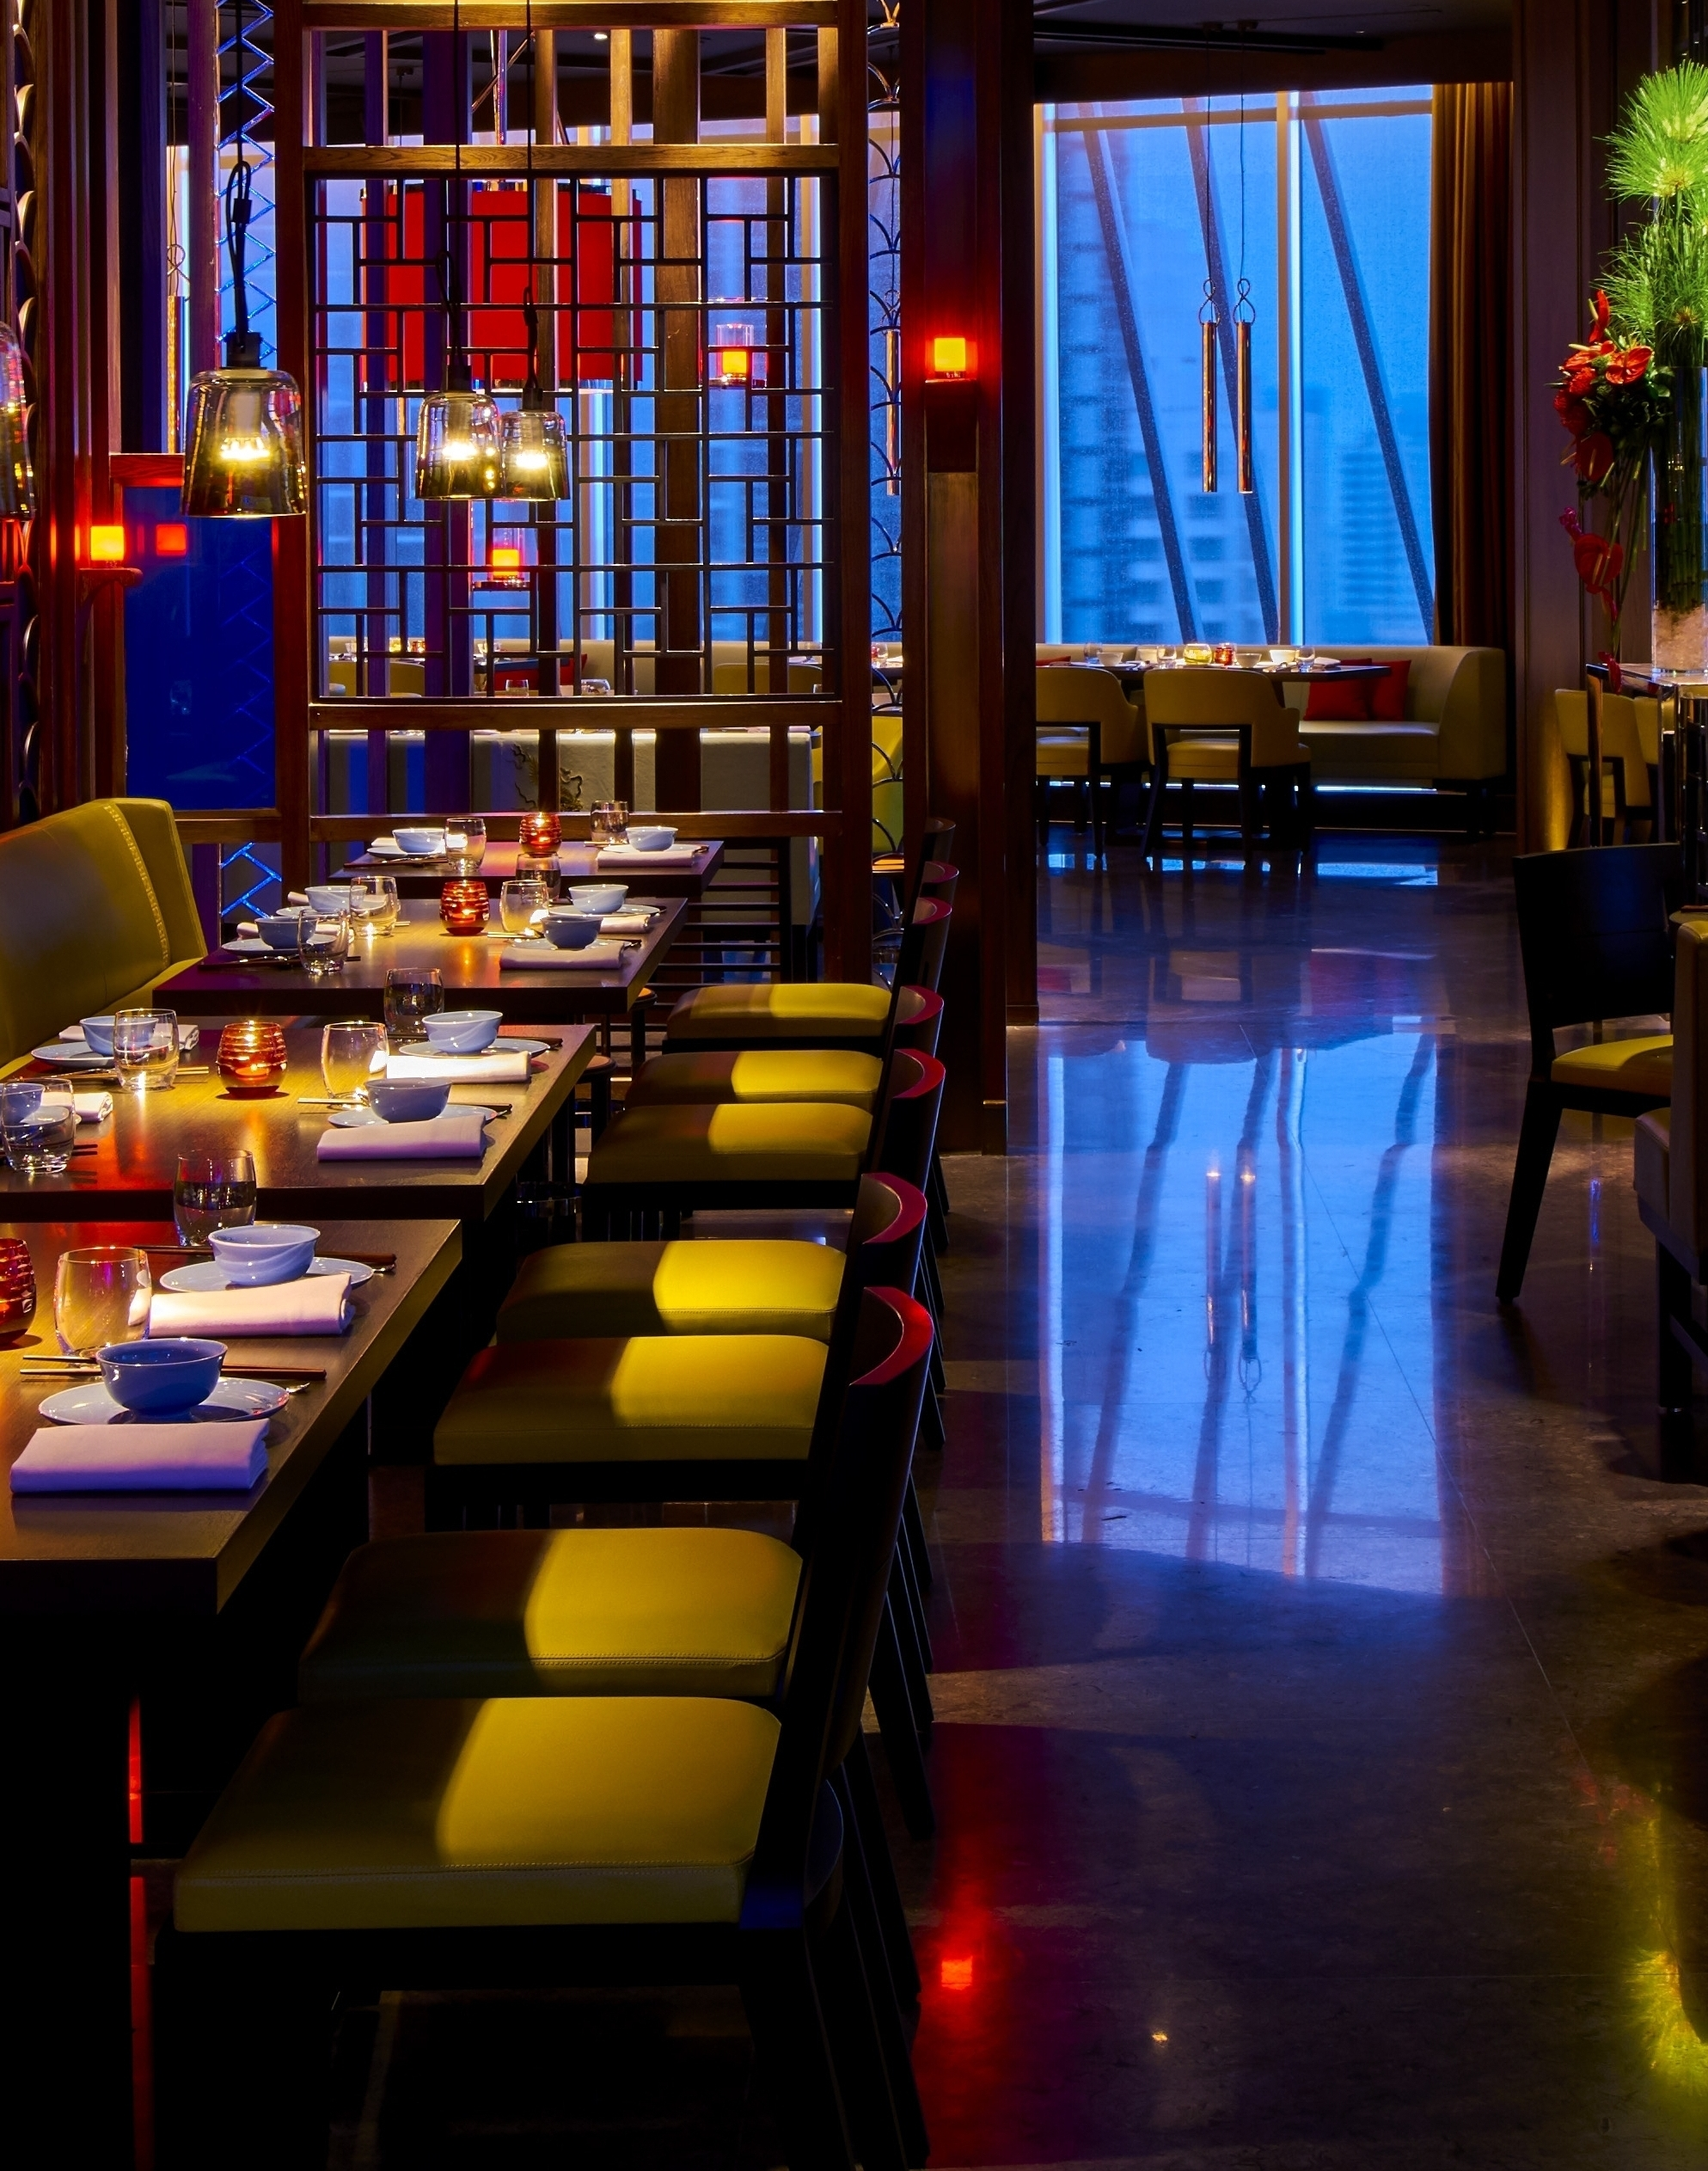 NOW OPEN, HAKKASAN JAKARTA WELCOMES GUESTS TO EXPERIENCE MODERN CANTONESE CUISINE IN AN UNRIVALLED LOCATION IN THE INDONESIAN CAPITAL